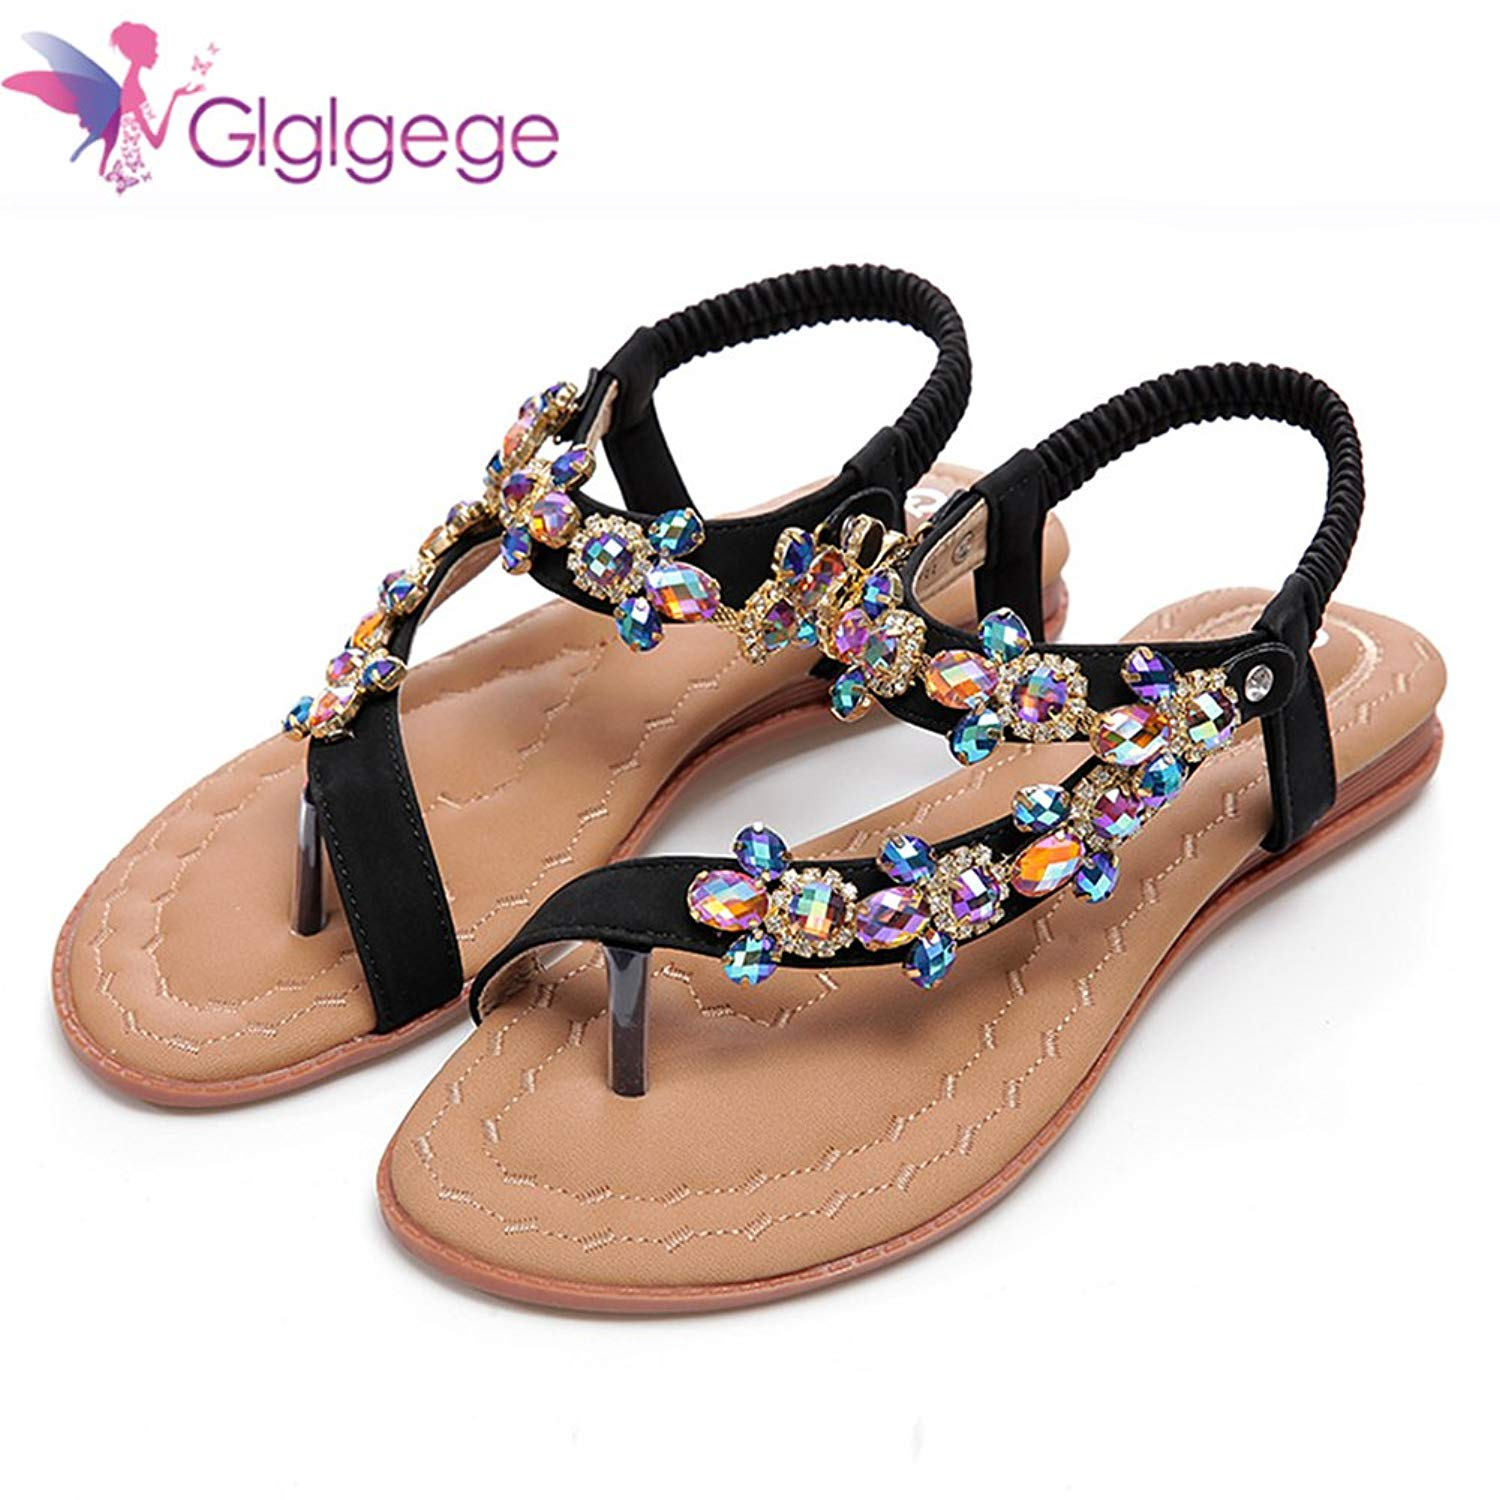 5409631fa5392c Get Quotations · Glglgege Women Sandals Strange Shoes Rhinestones Chains  Thong Spot Women s Shoes Diamond Flat Sandals Large Size